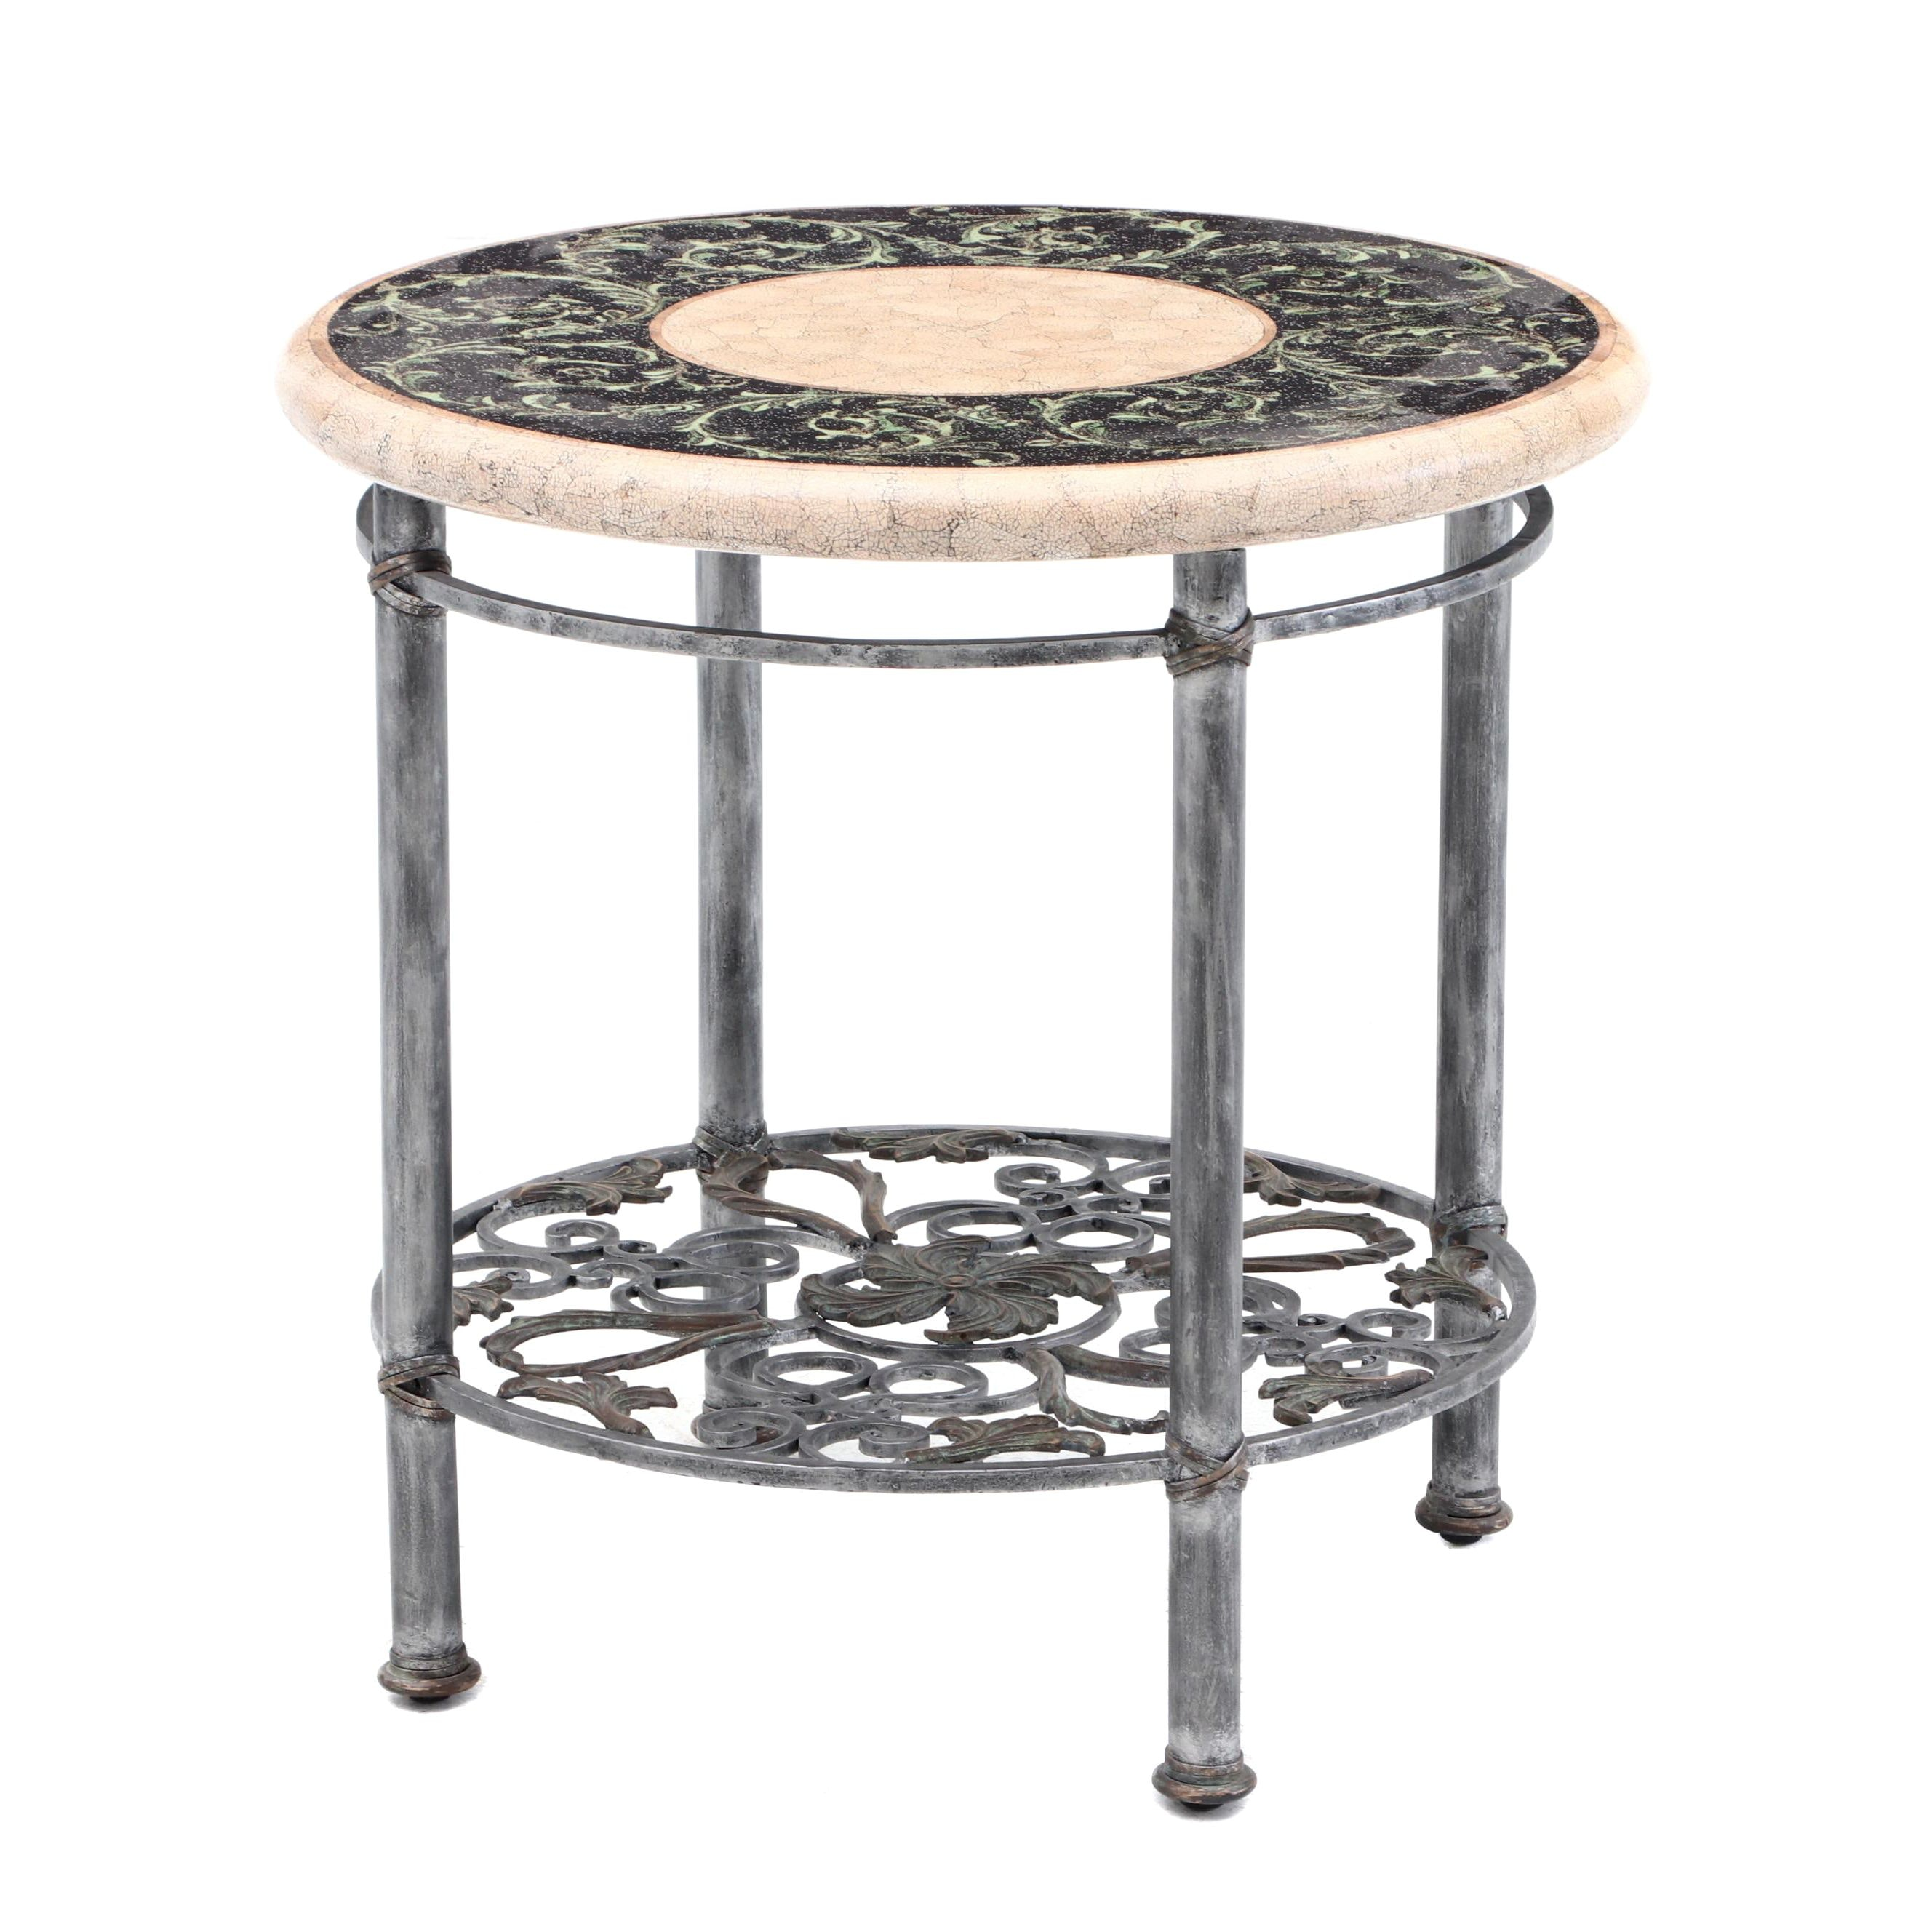 Round Wrought Iron Occasional Table with Faux Tile Top